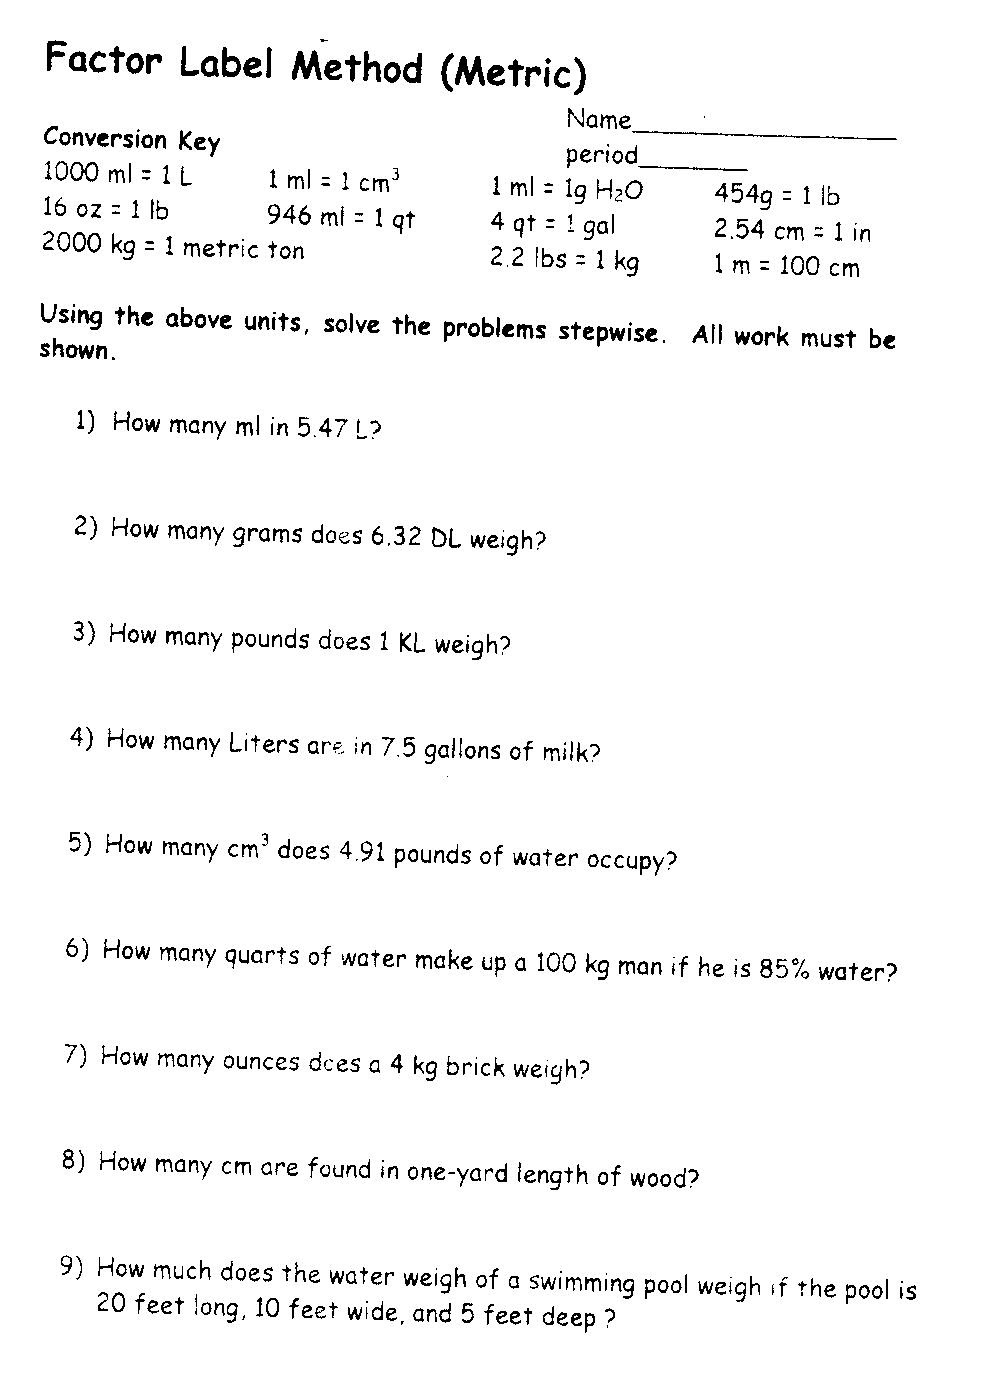 Lab Safety Rules Worksheet Answers - Nidecmege